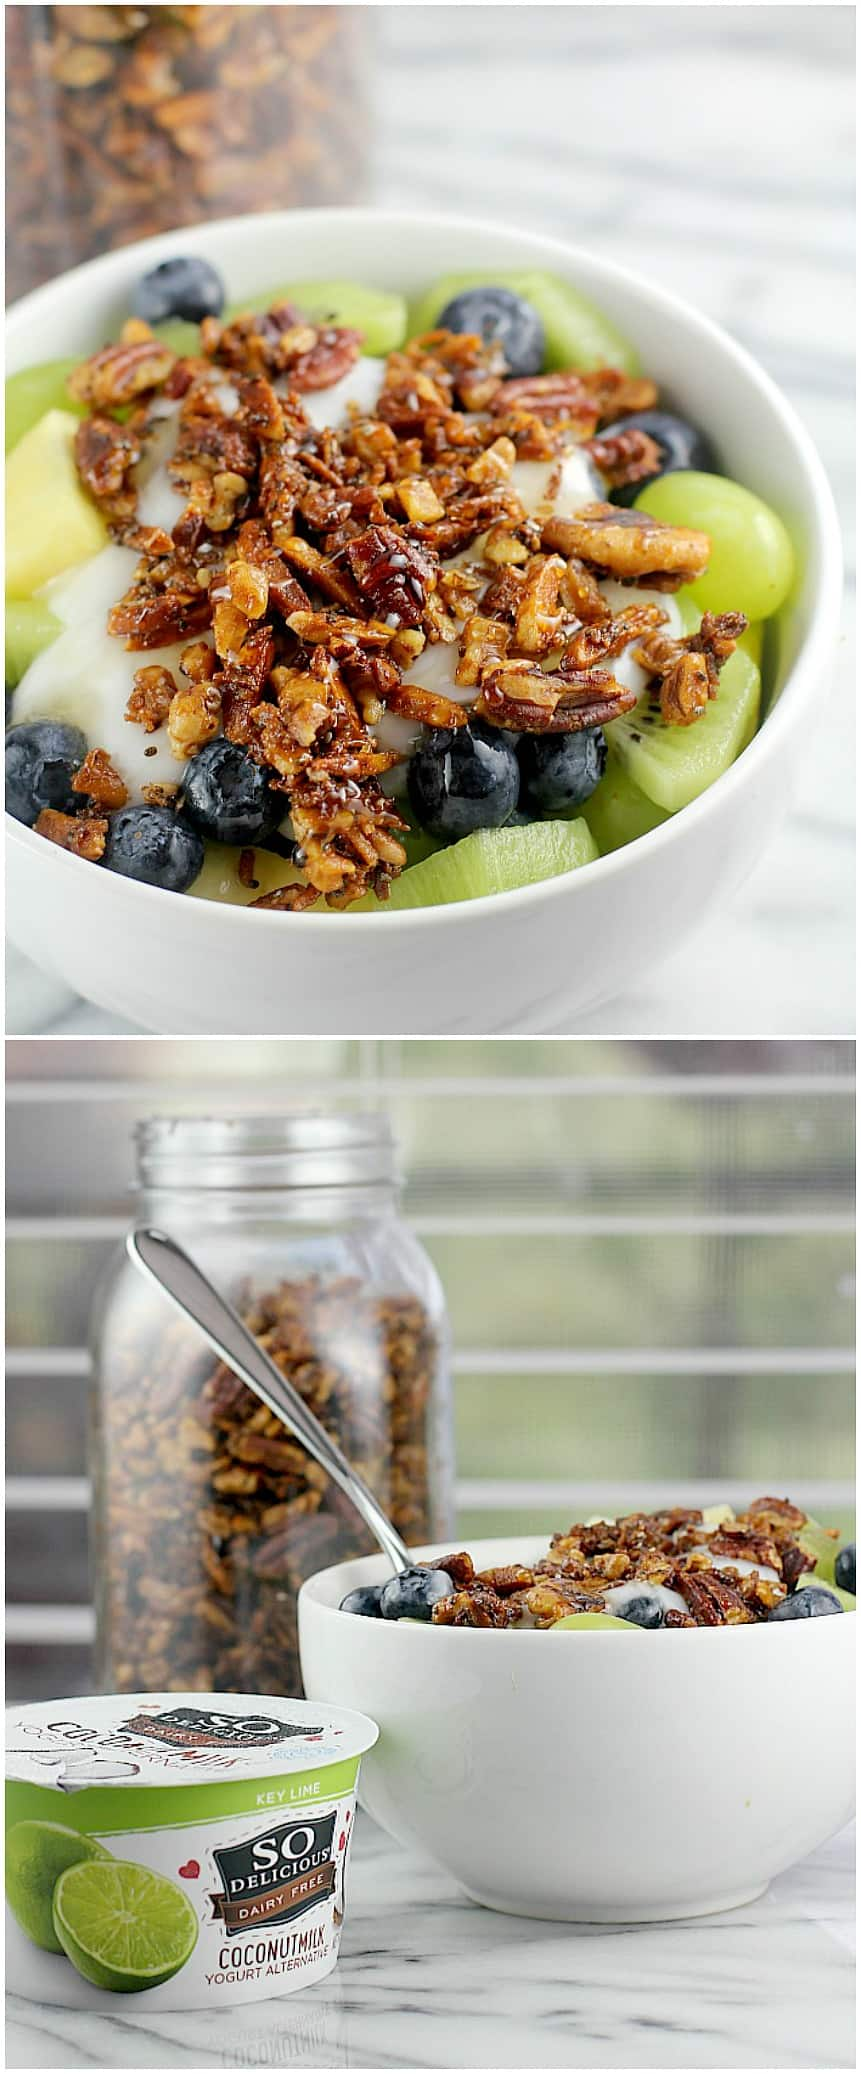 Key Lime Parfait with Simple Grain-Free Granola (DF, GF, Paleo) #DairyFreeGoodness #ad